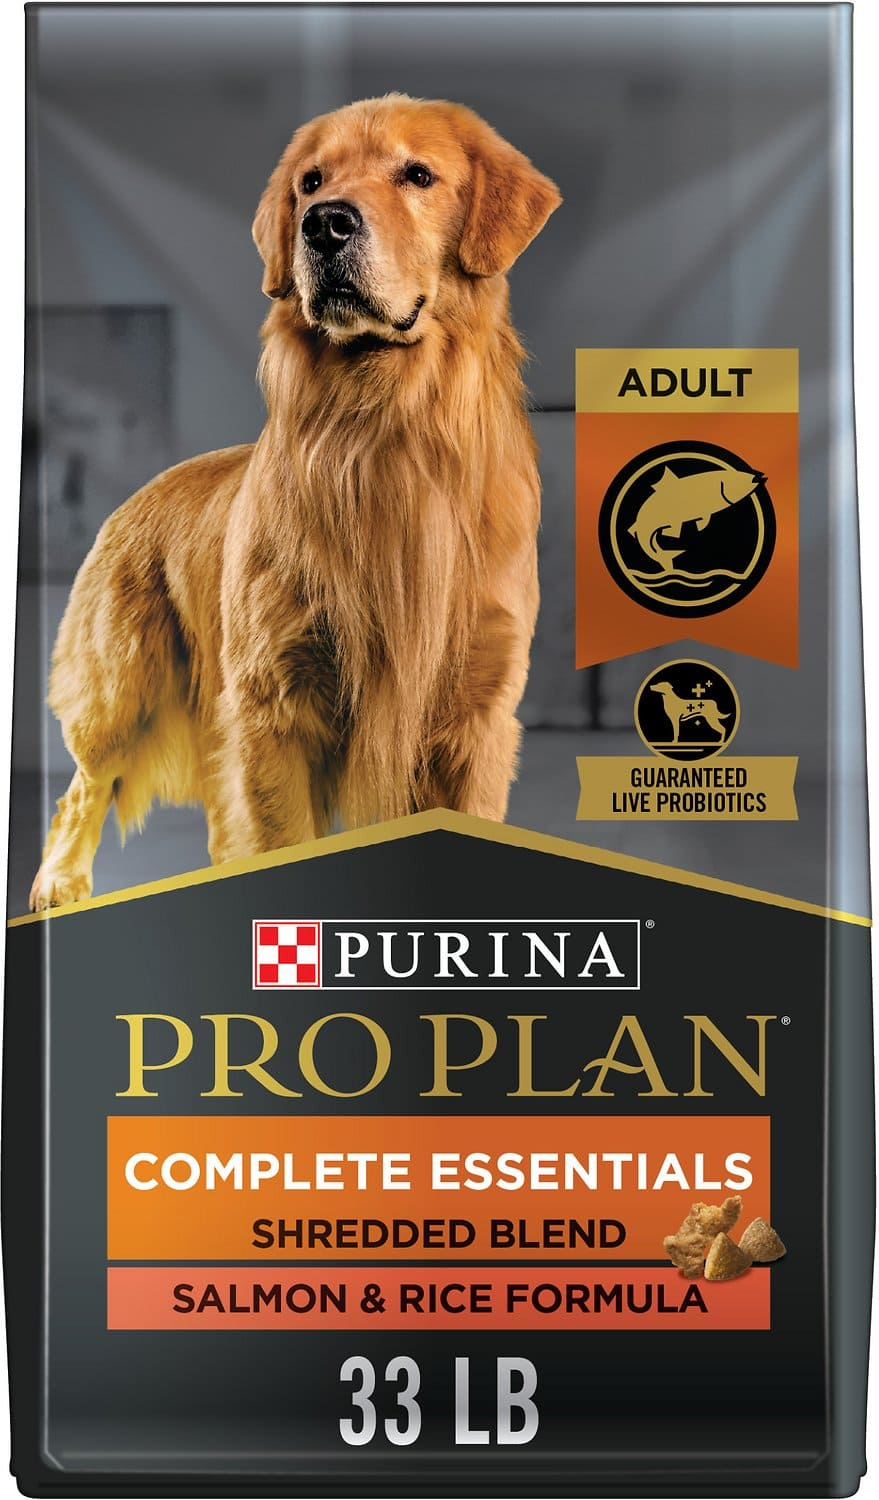 Purina Pro Plan Adult Complete Essentials Shredded Blend Formula for Dogs 33 lbs Salmon & Rice 1